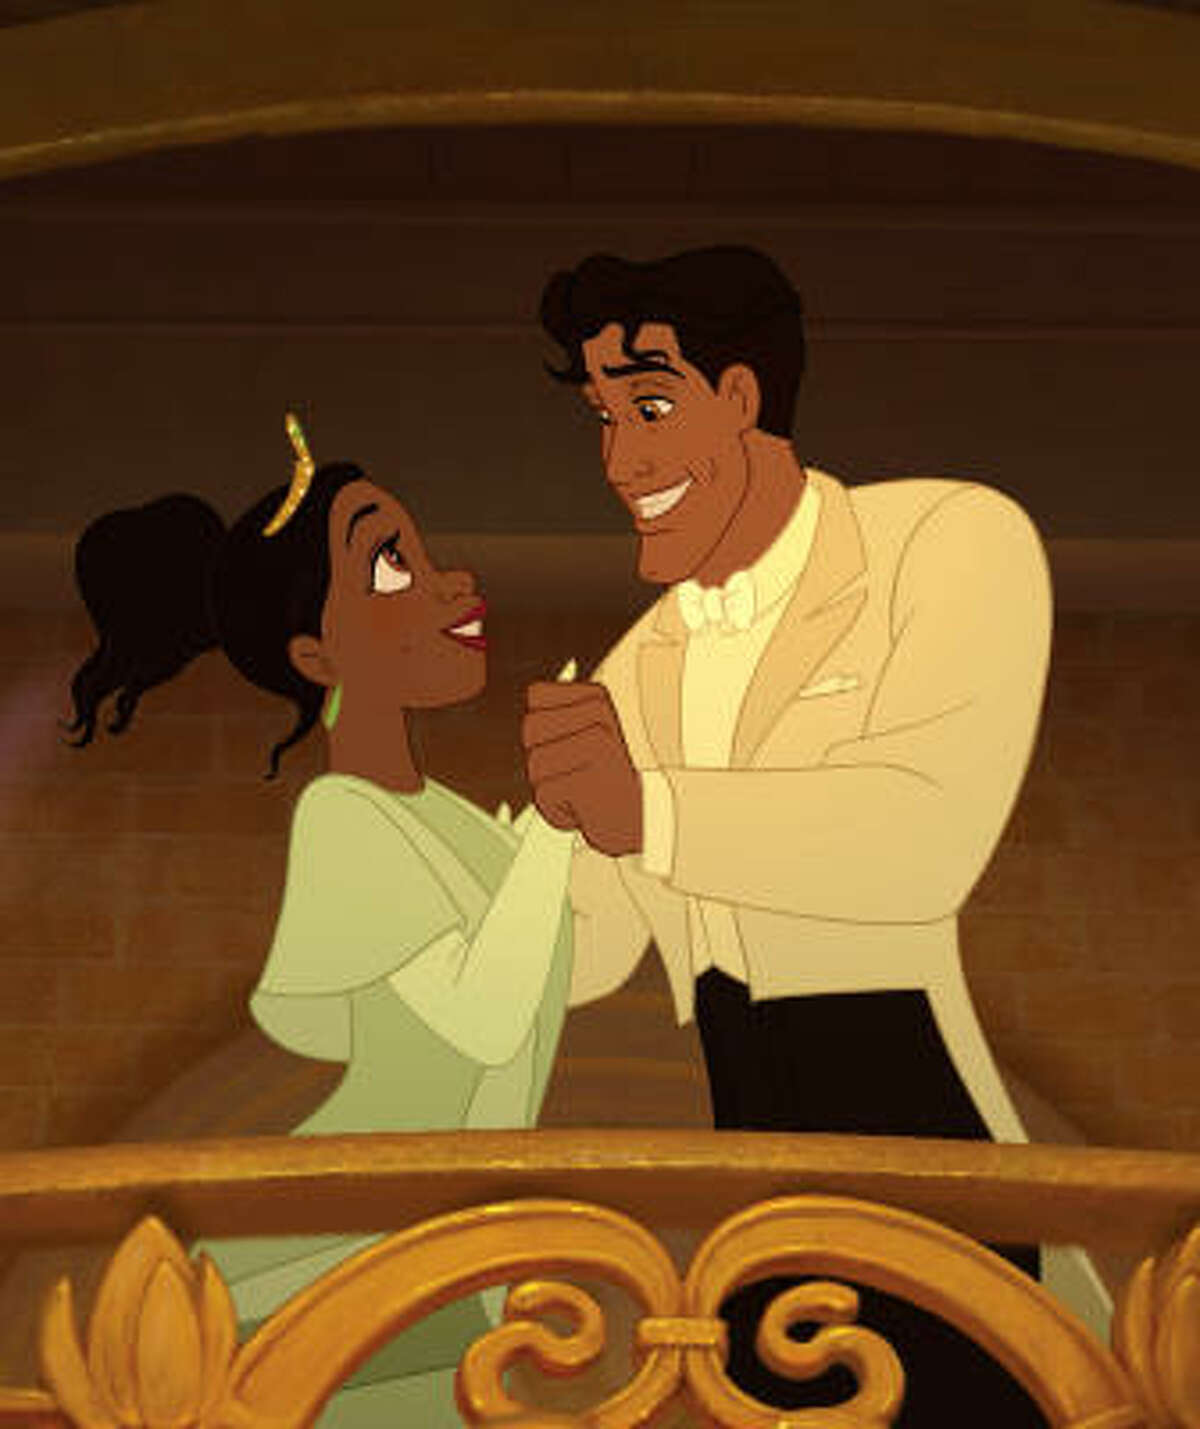 Princess Tiana is swept away by Prince Naveen of Maldonia in The Princess and the Frog.